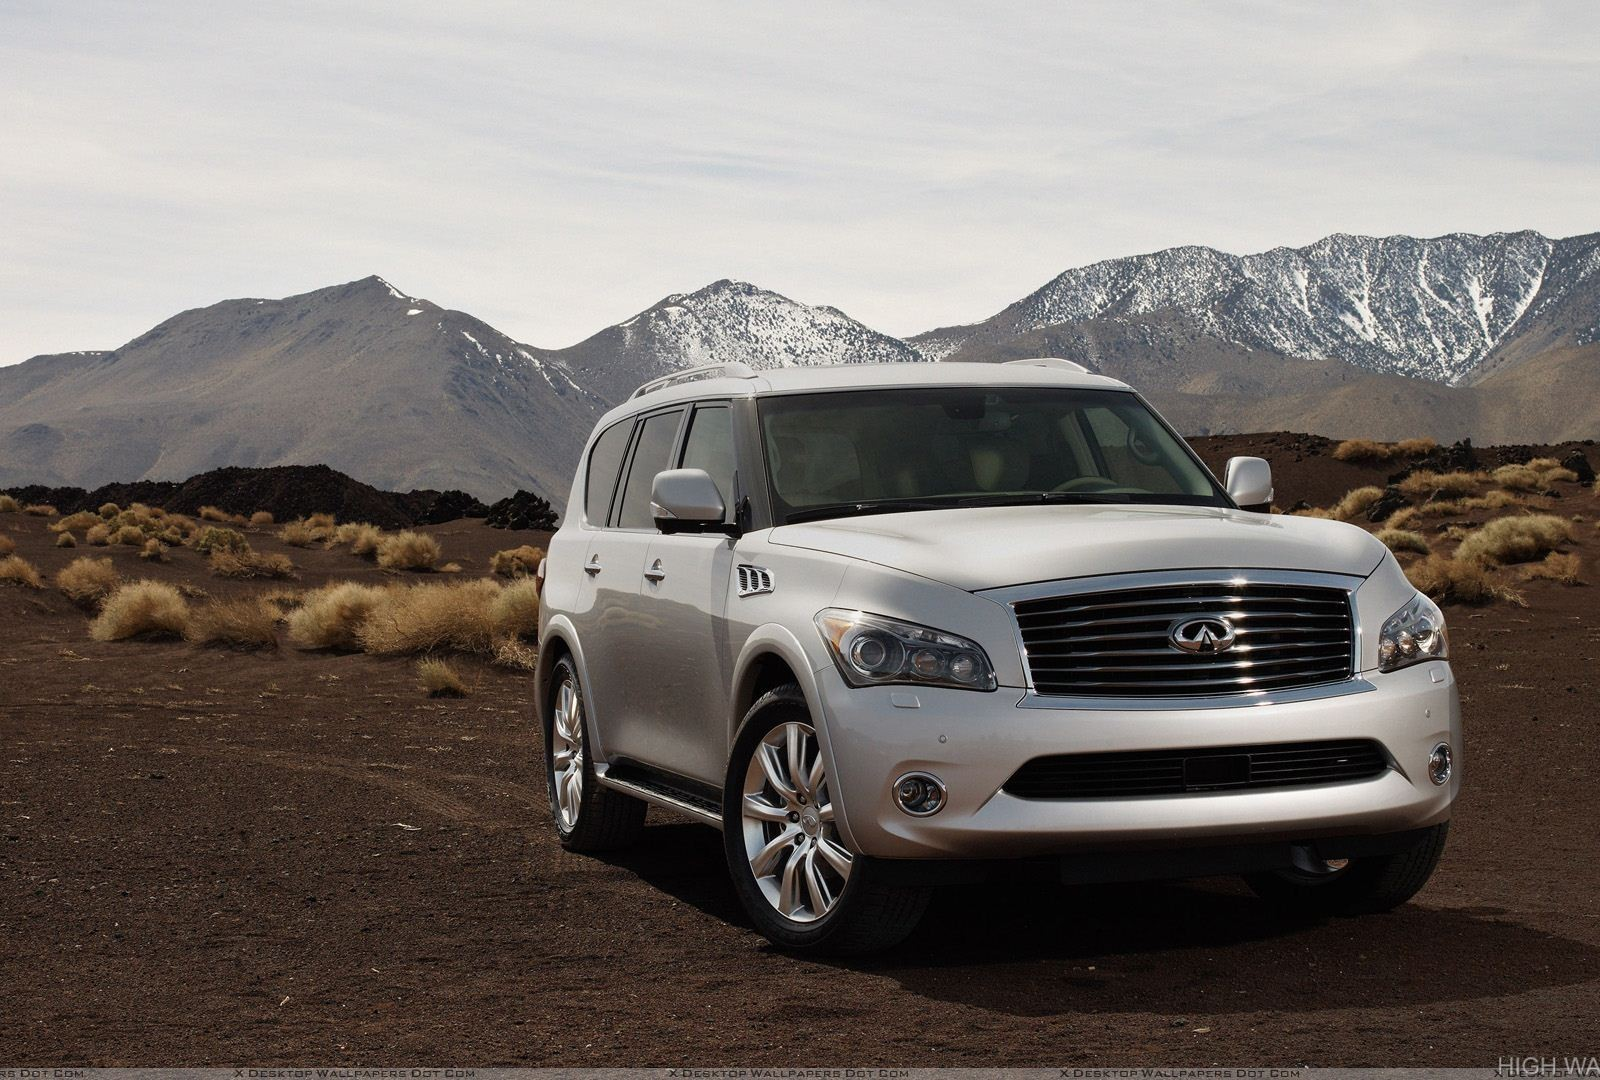 2011 infiniti qx56 front pose in white near hills hd wallpaper 2011 infiniti qx56 front pose in white near hills vanachro Image collections